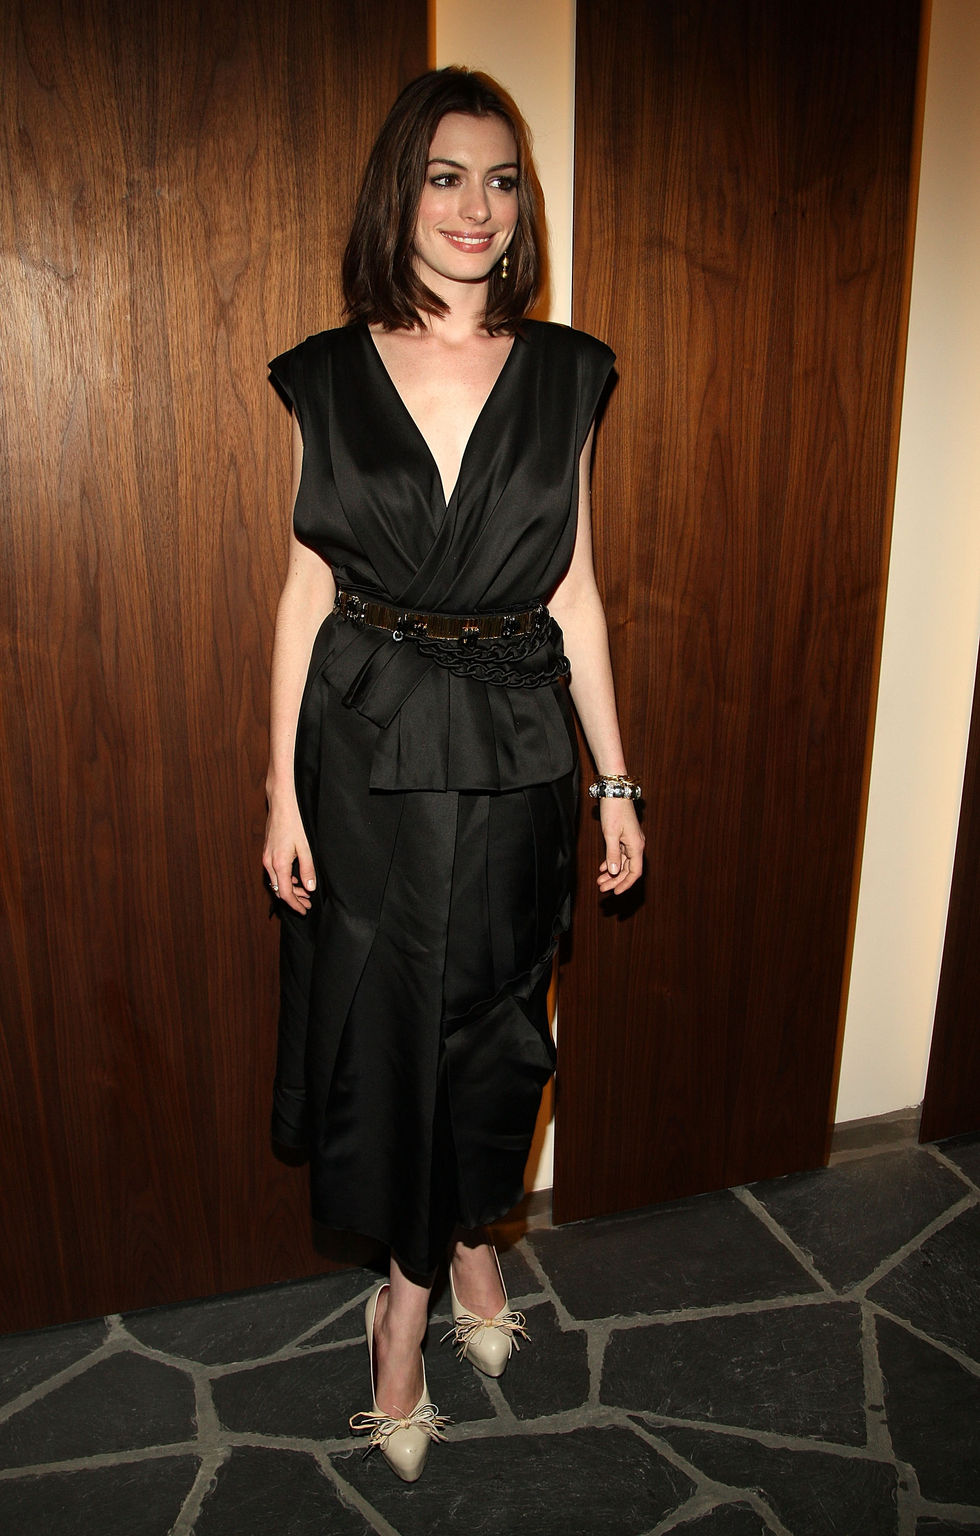 anne-hathaway-rachel-getting-married-screening-in-new-york-city-01